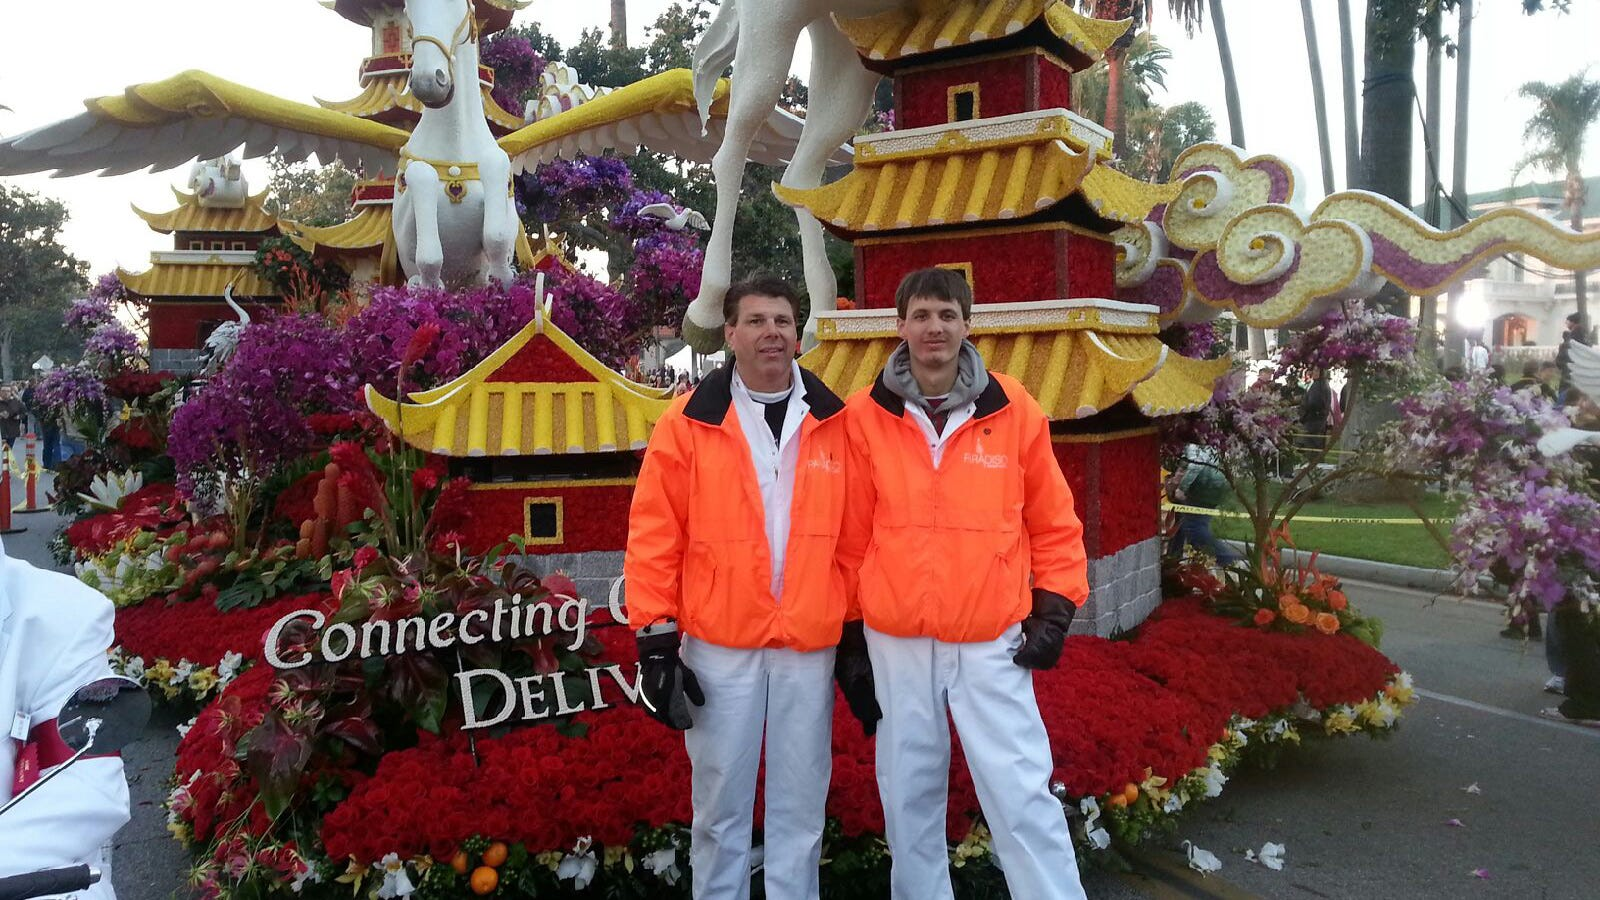 Oklahomans Selected To Drive Float In Rose Parade